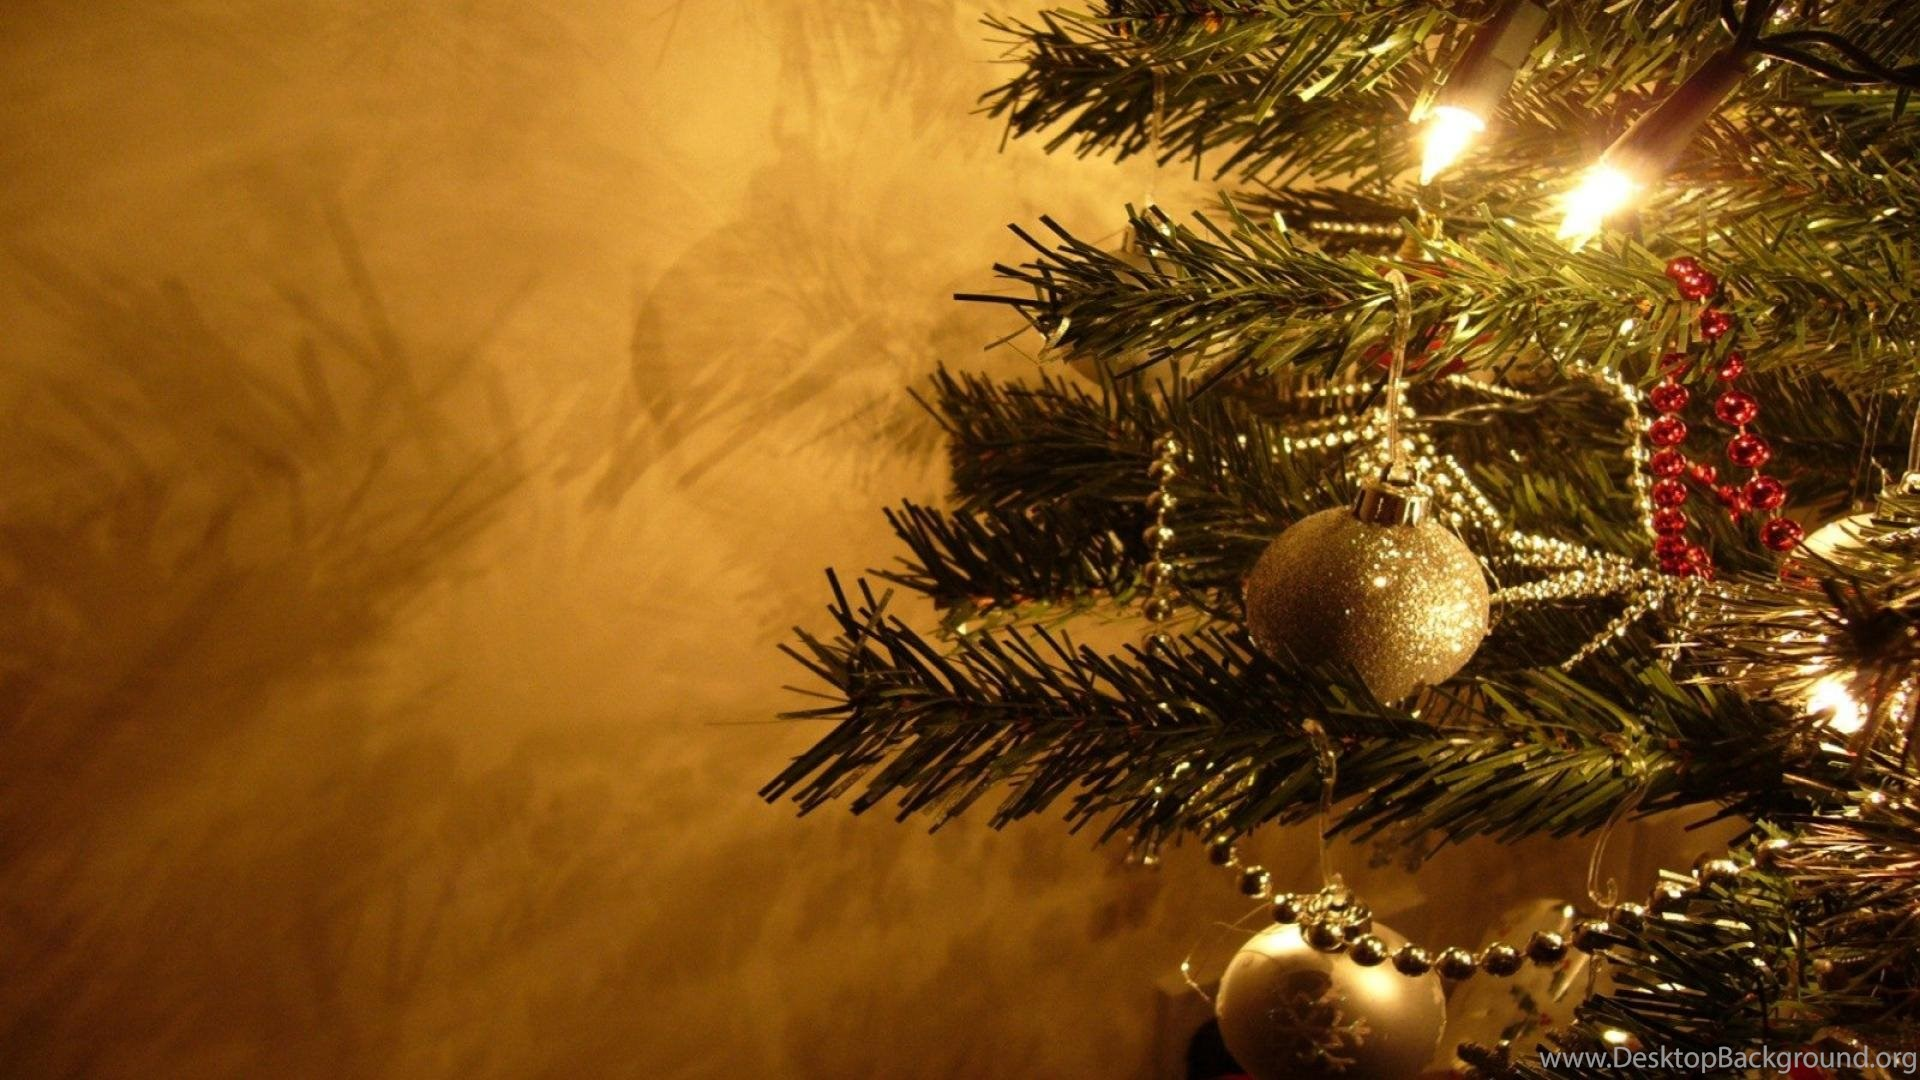 Gold Christmas Desktop Wallpapers Hd Wallpapers Free To